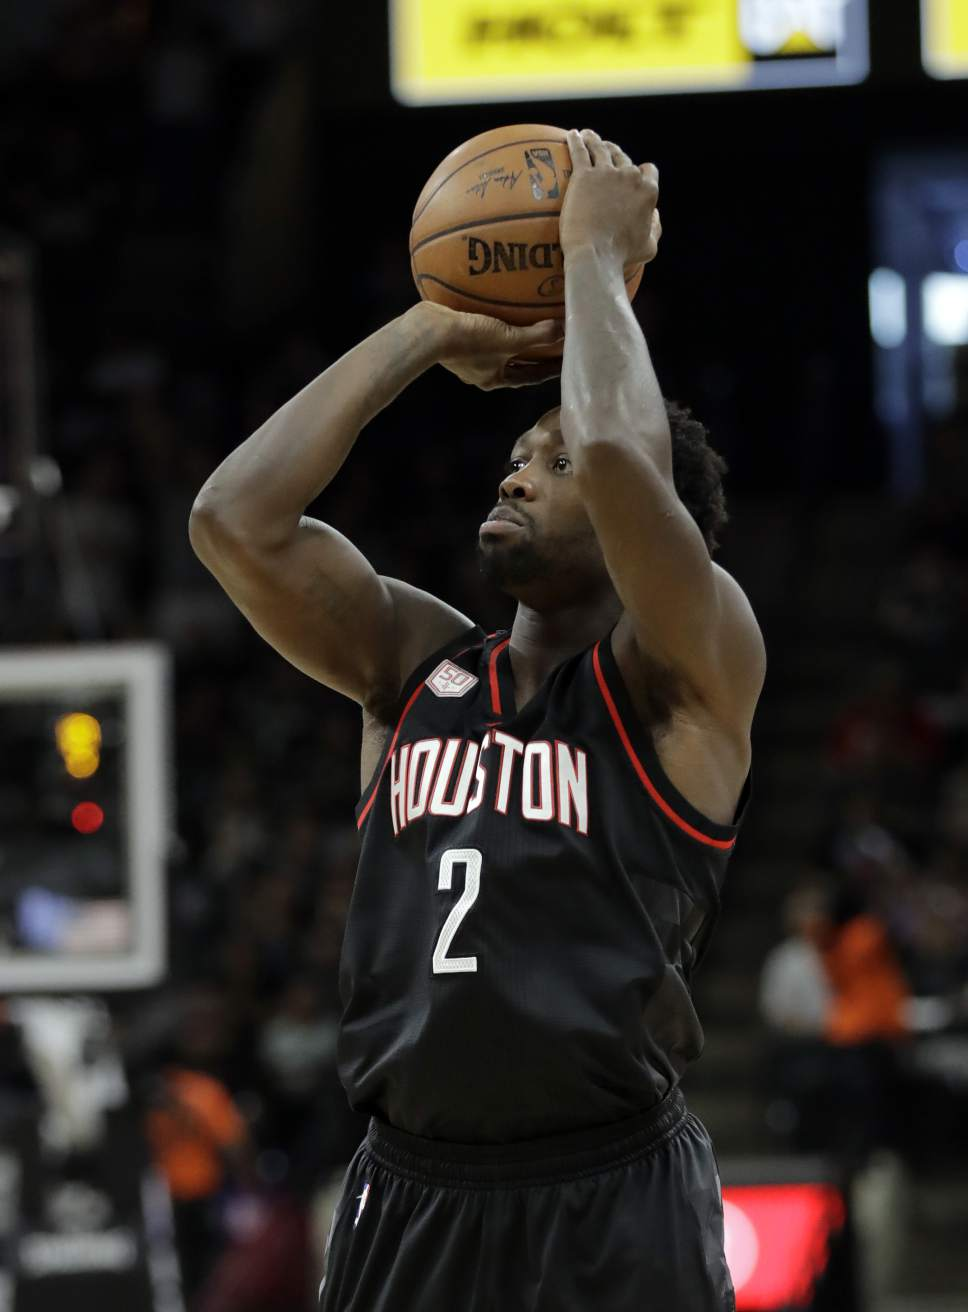 Houston Rockets' Patrick Beverley (2) attempts a shot during the first half in Game 5 of an NBA basketball second-round playoff series, Tuesday, May 9, 2017, in San Antonio. (AP Photo/Eric Gay)